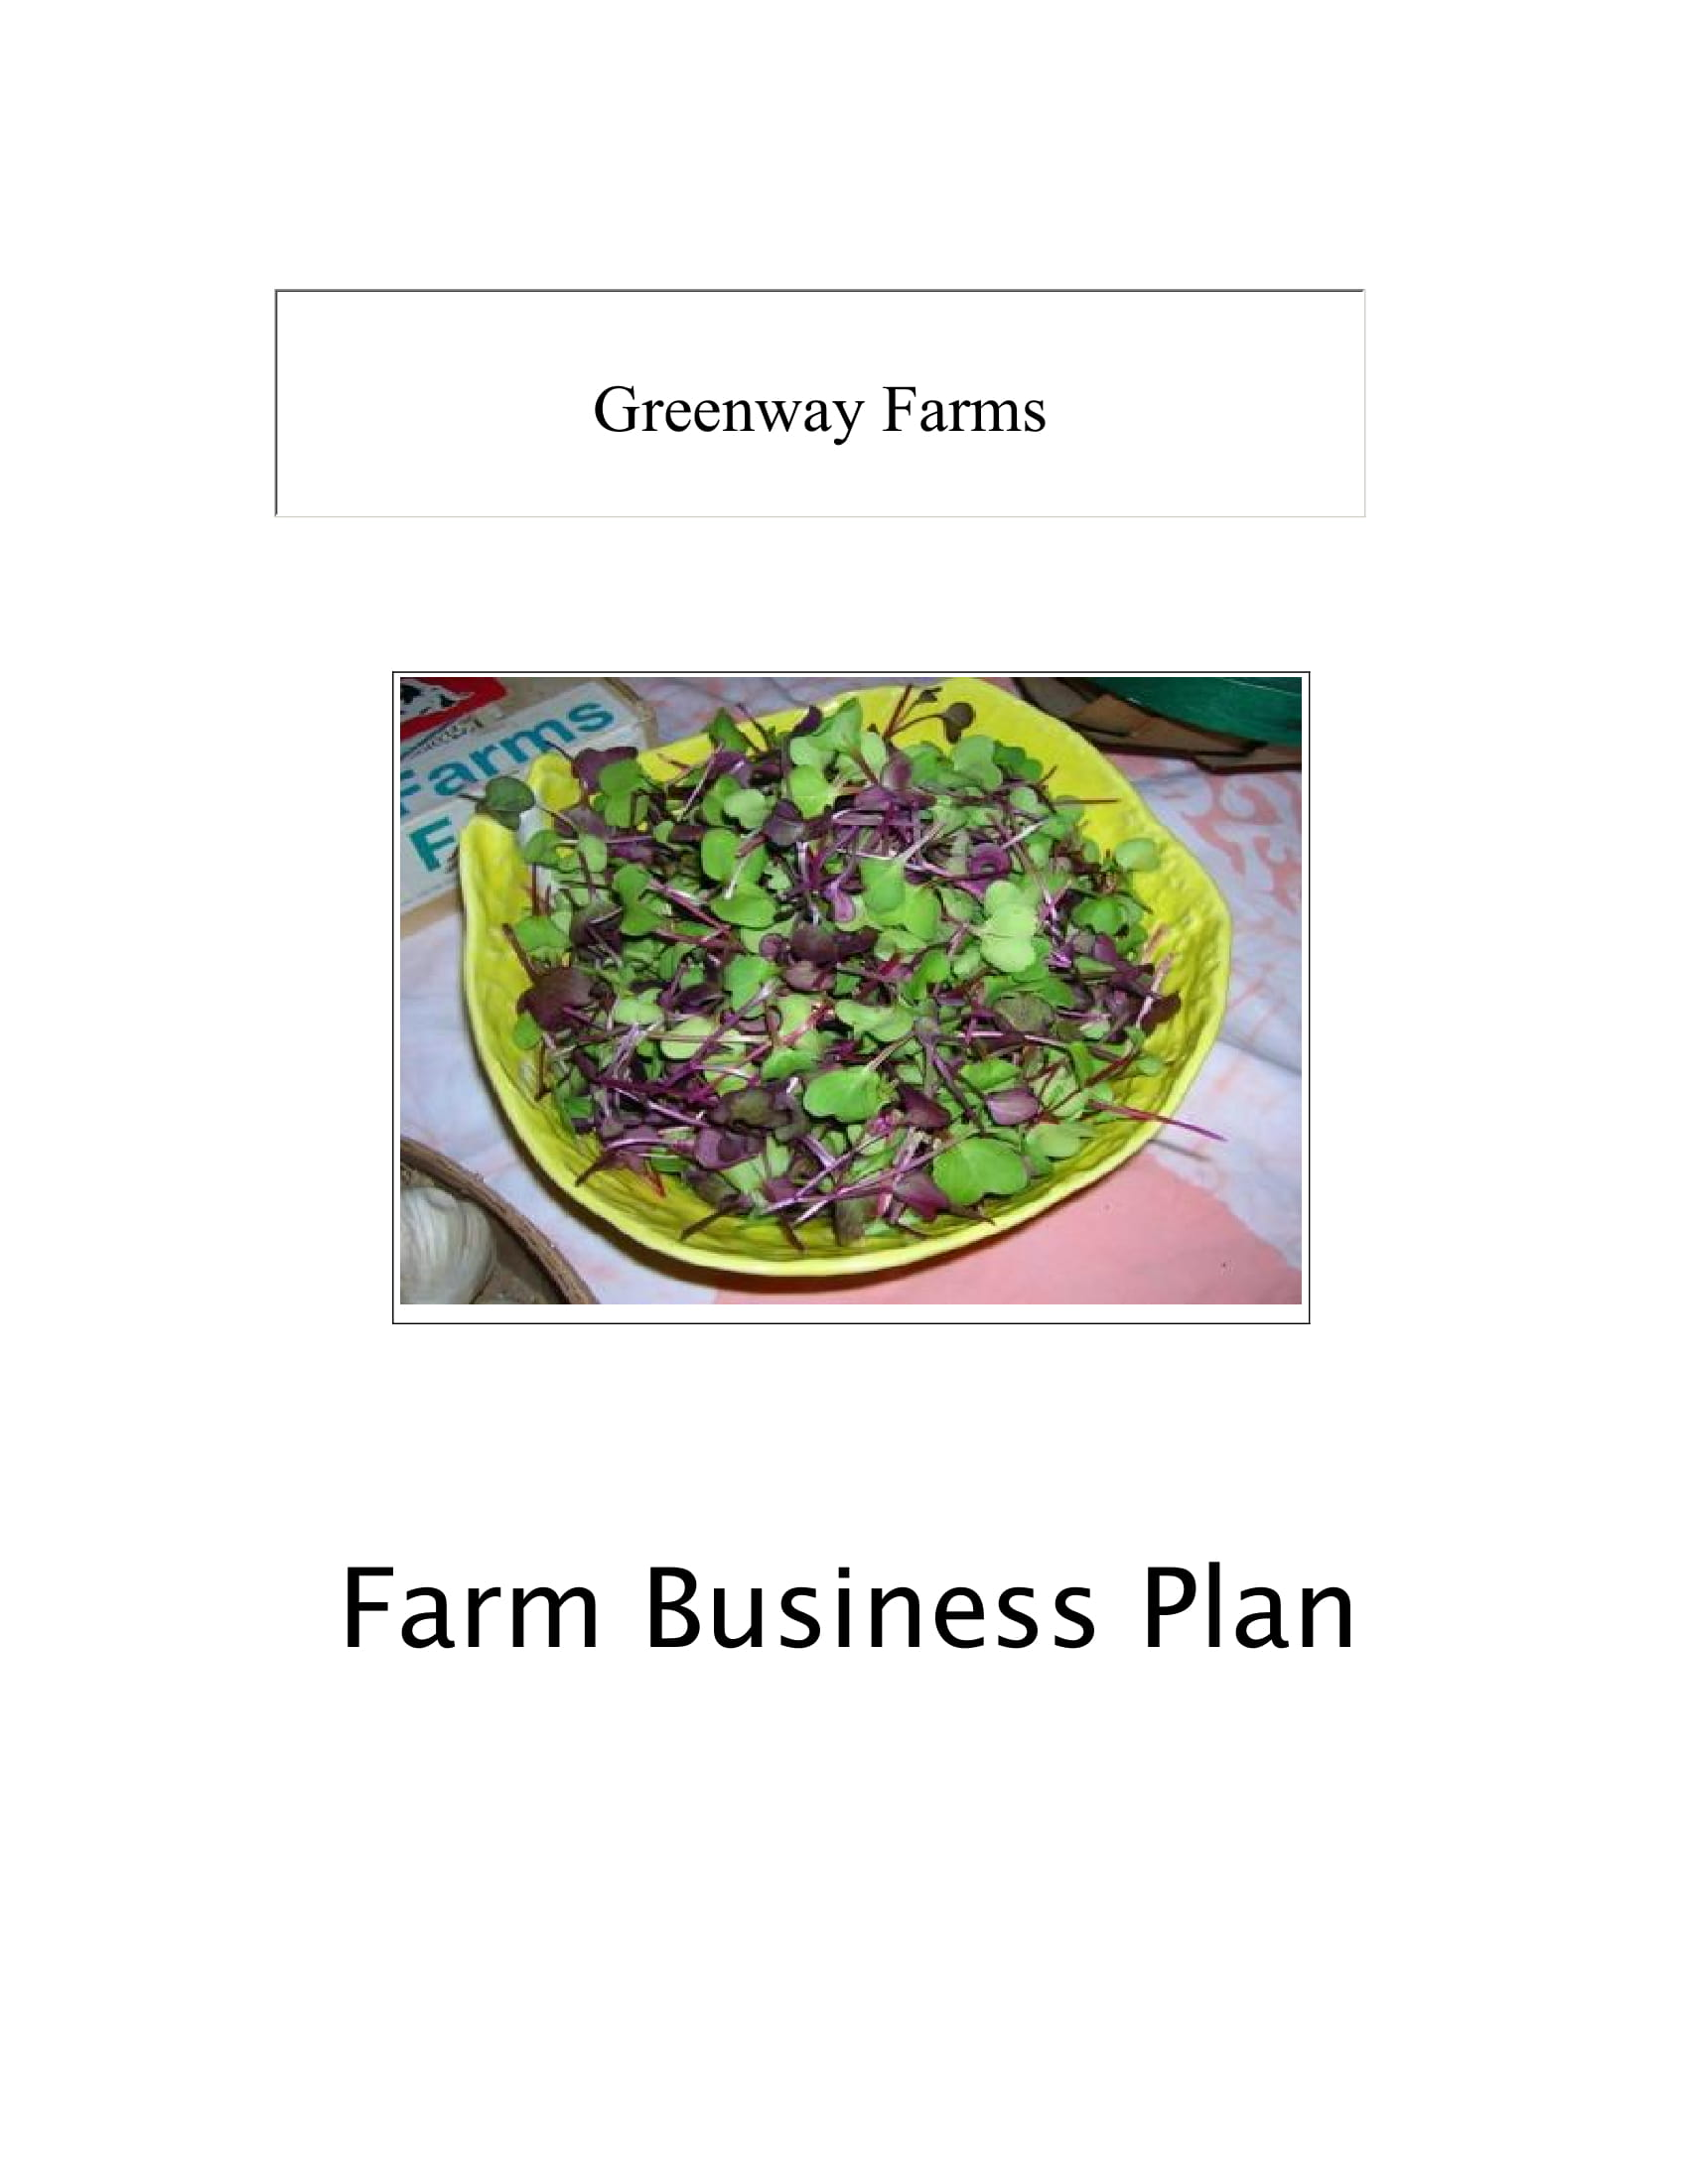 agricultural farm business plan example 01